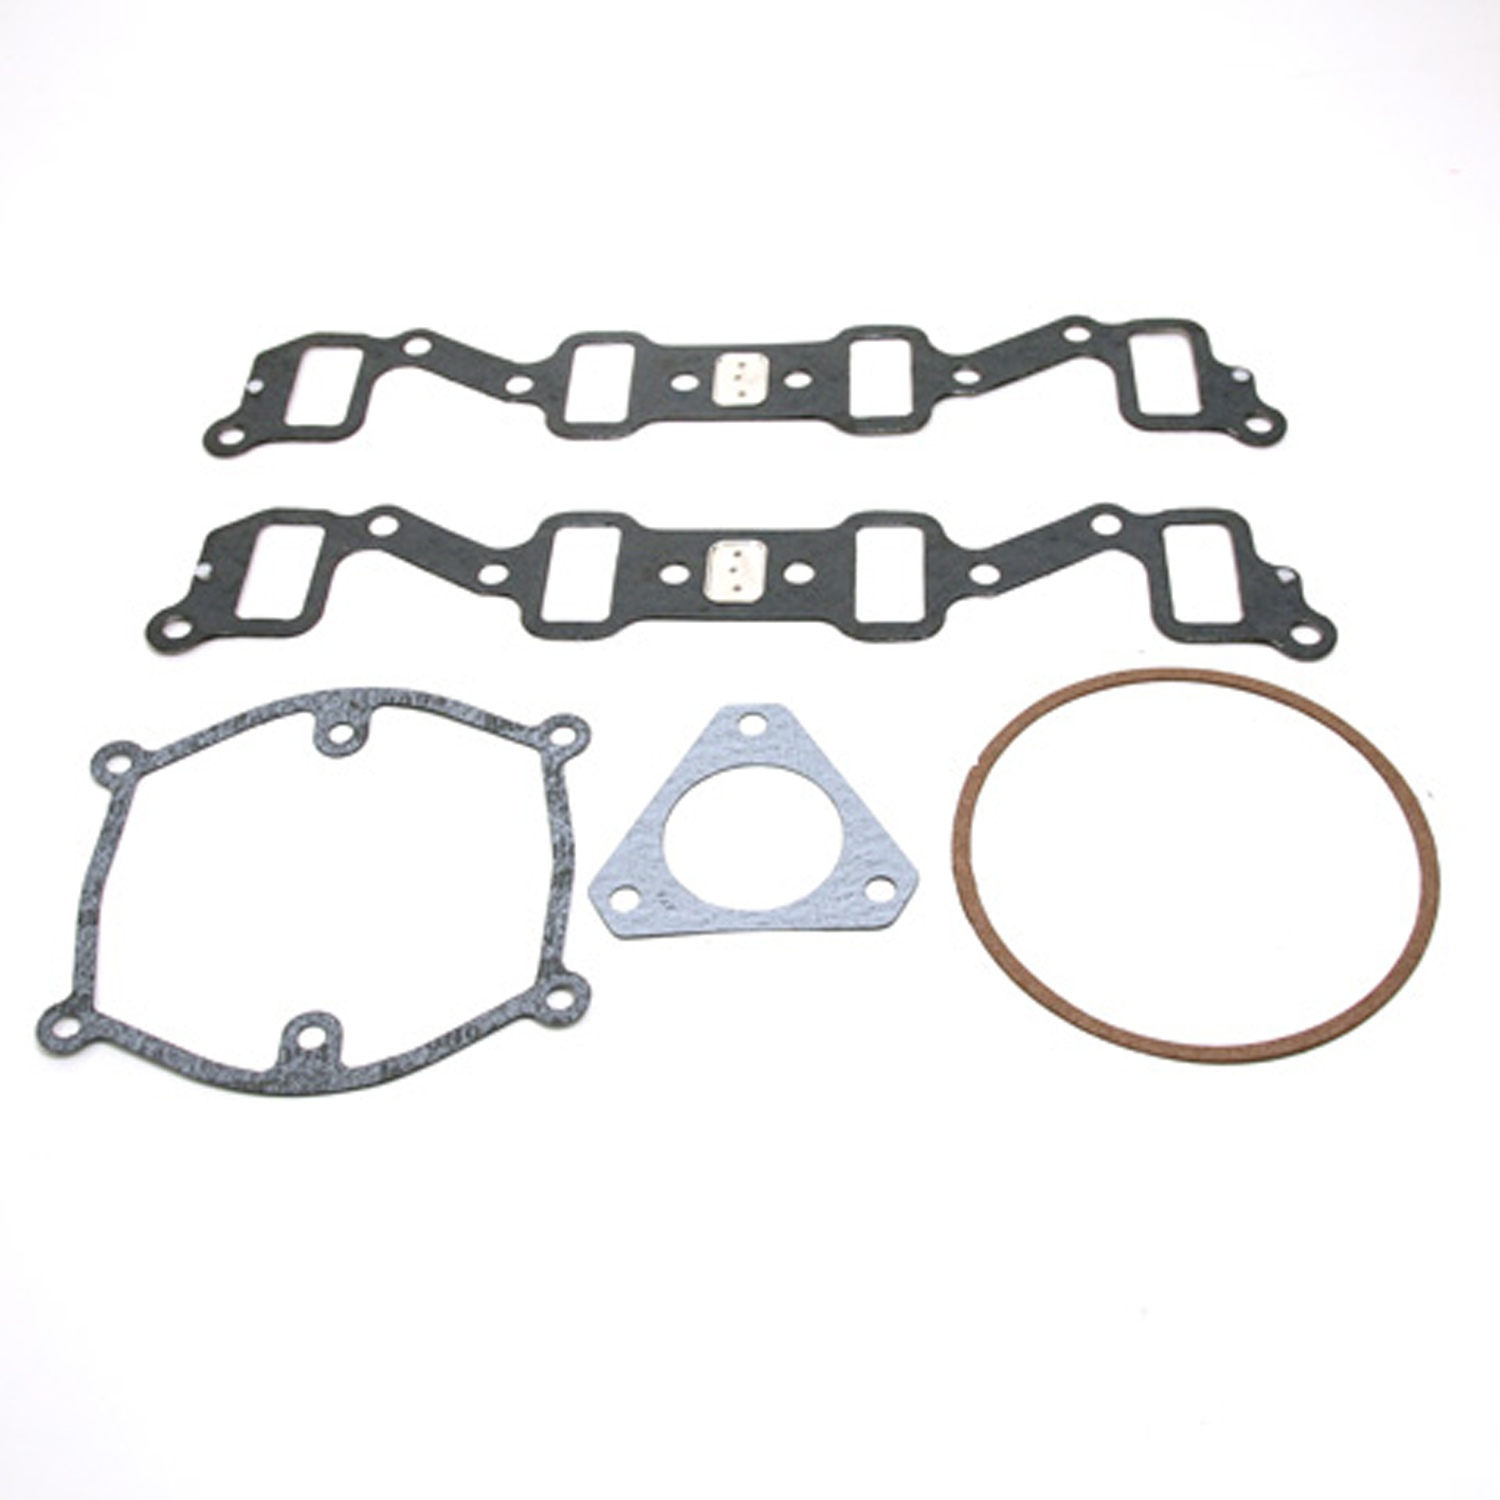 DELPHI - Fuel Injection Pump Installation Kit - DPH 7135-263